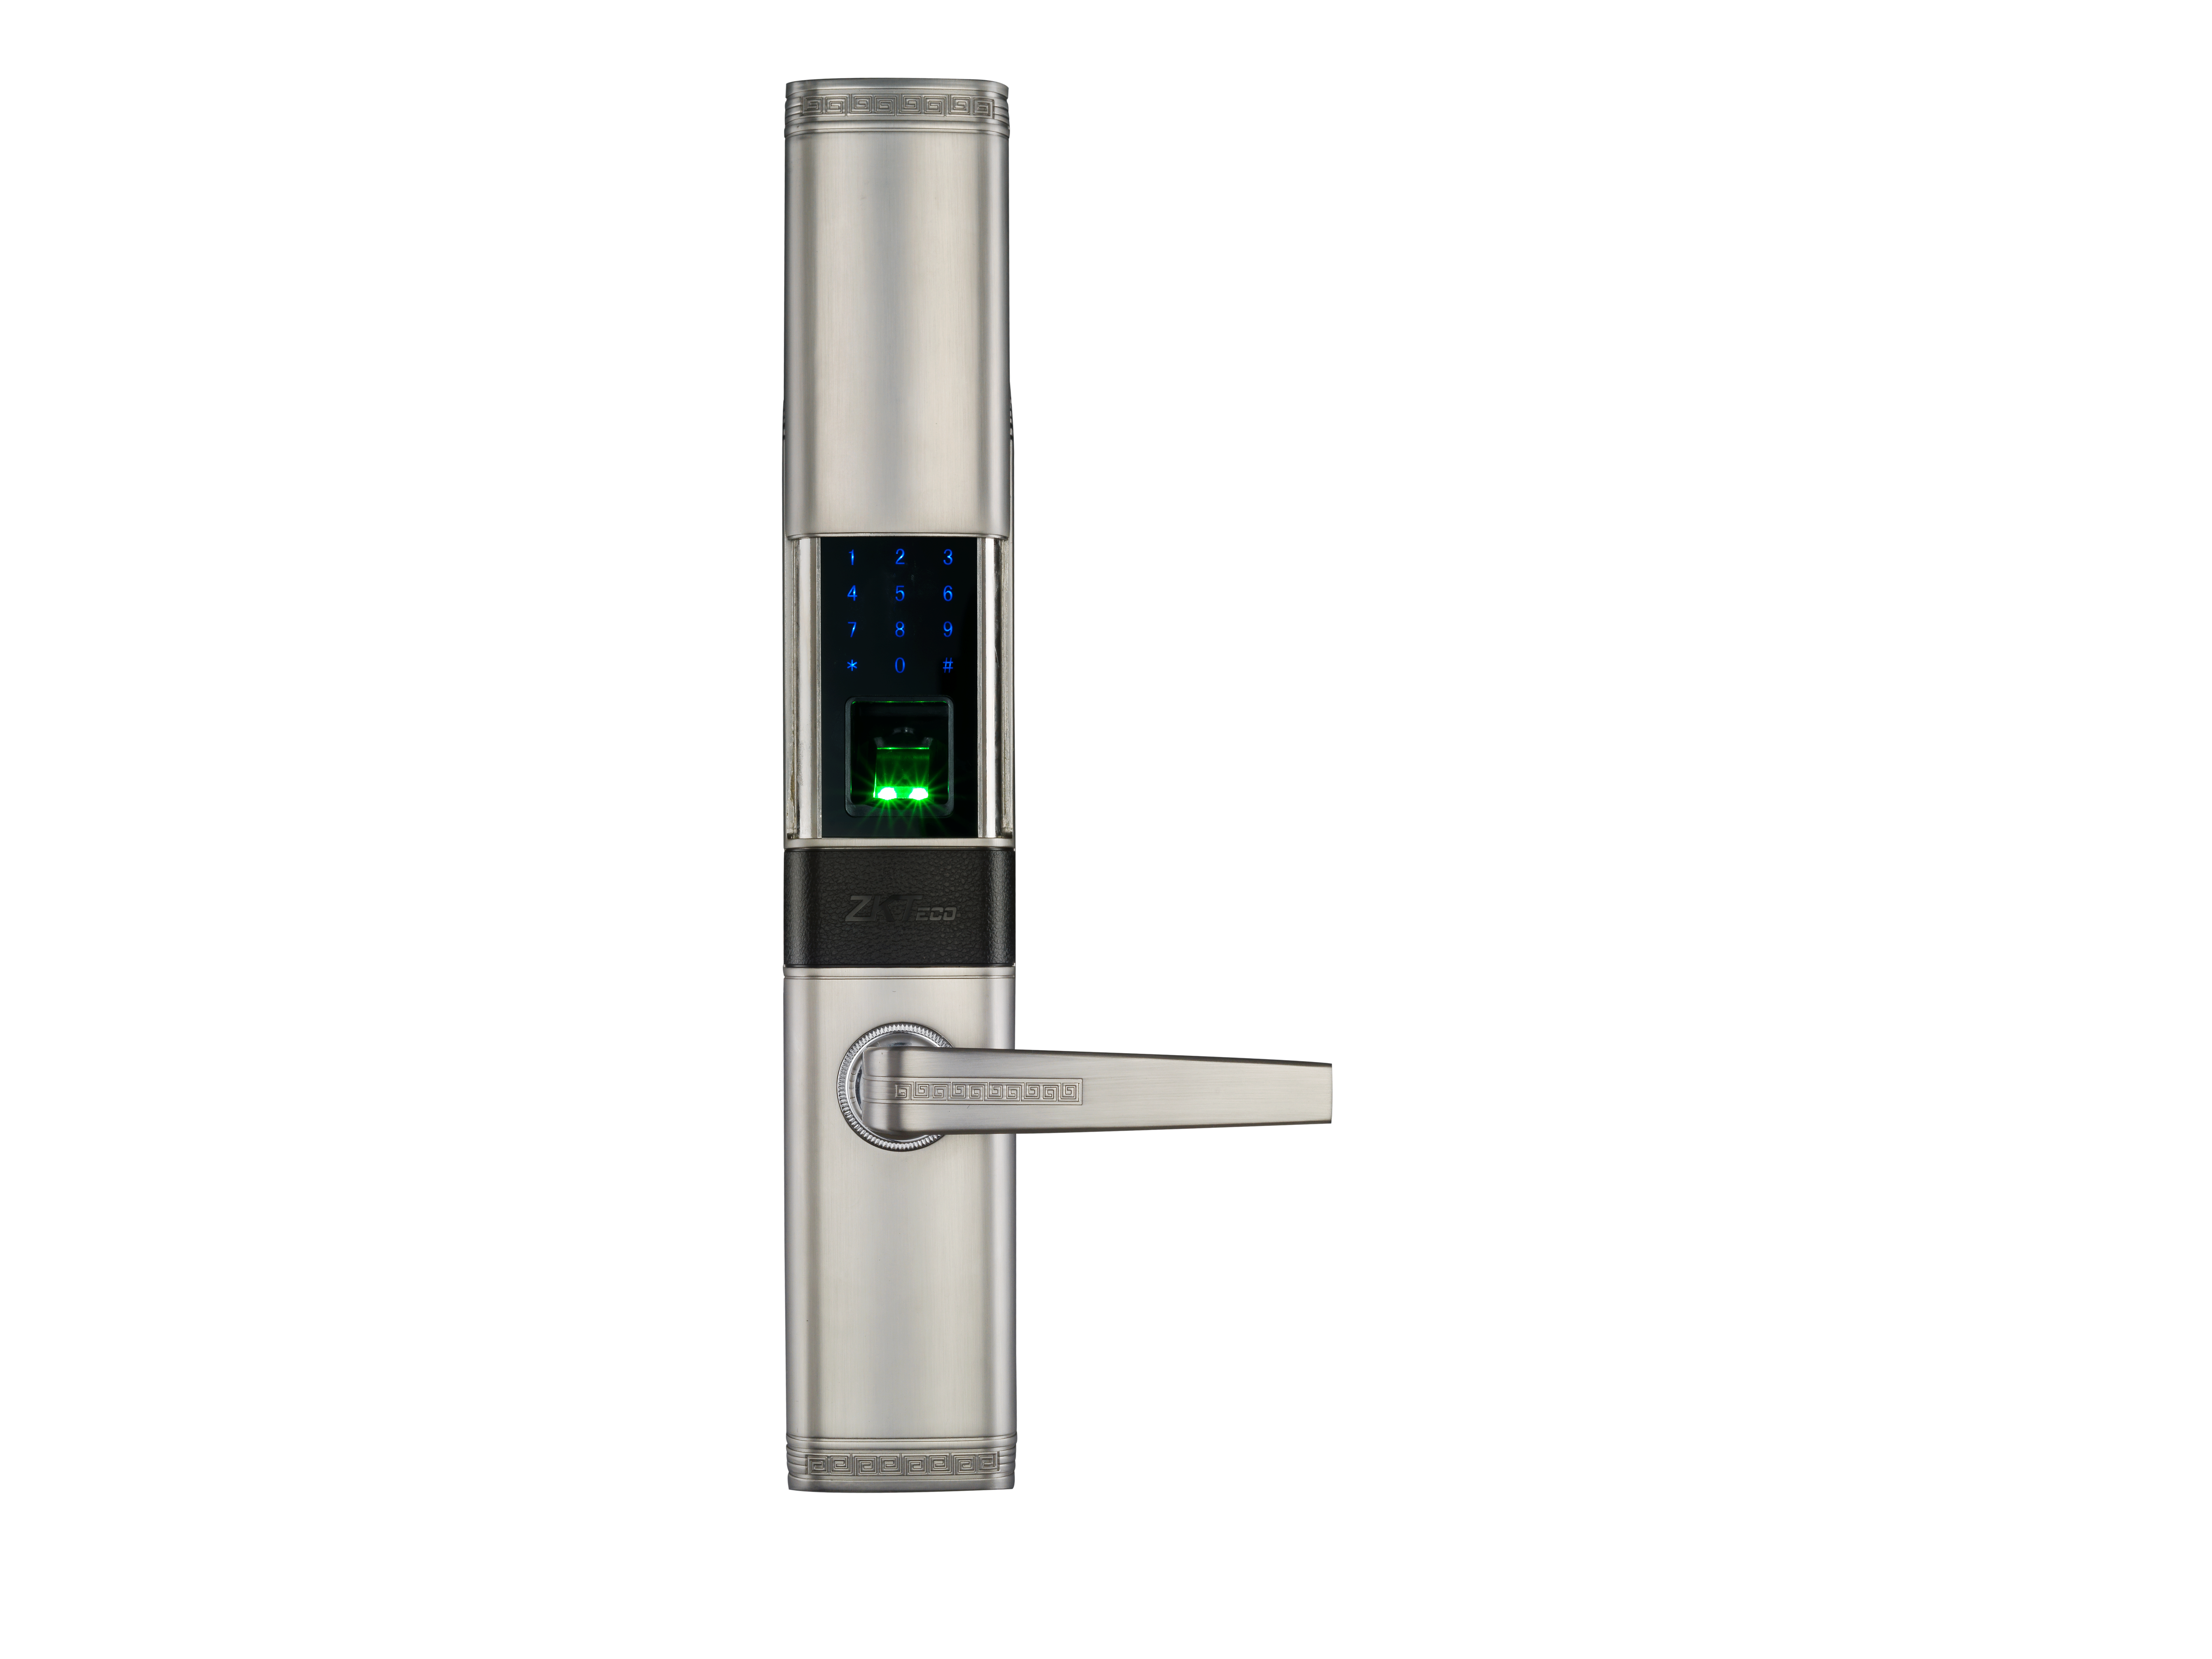 Tl200 New Fingerprint Lock With Voice Guide Feature Keyless Door Lock Keyless Fingerprint Door Lock